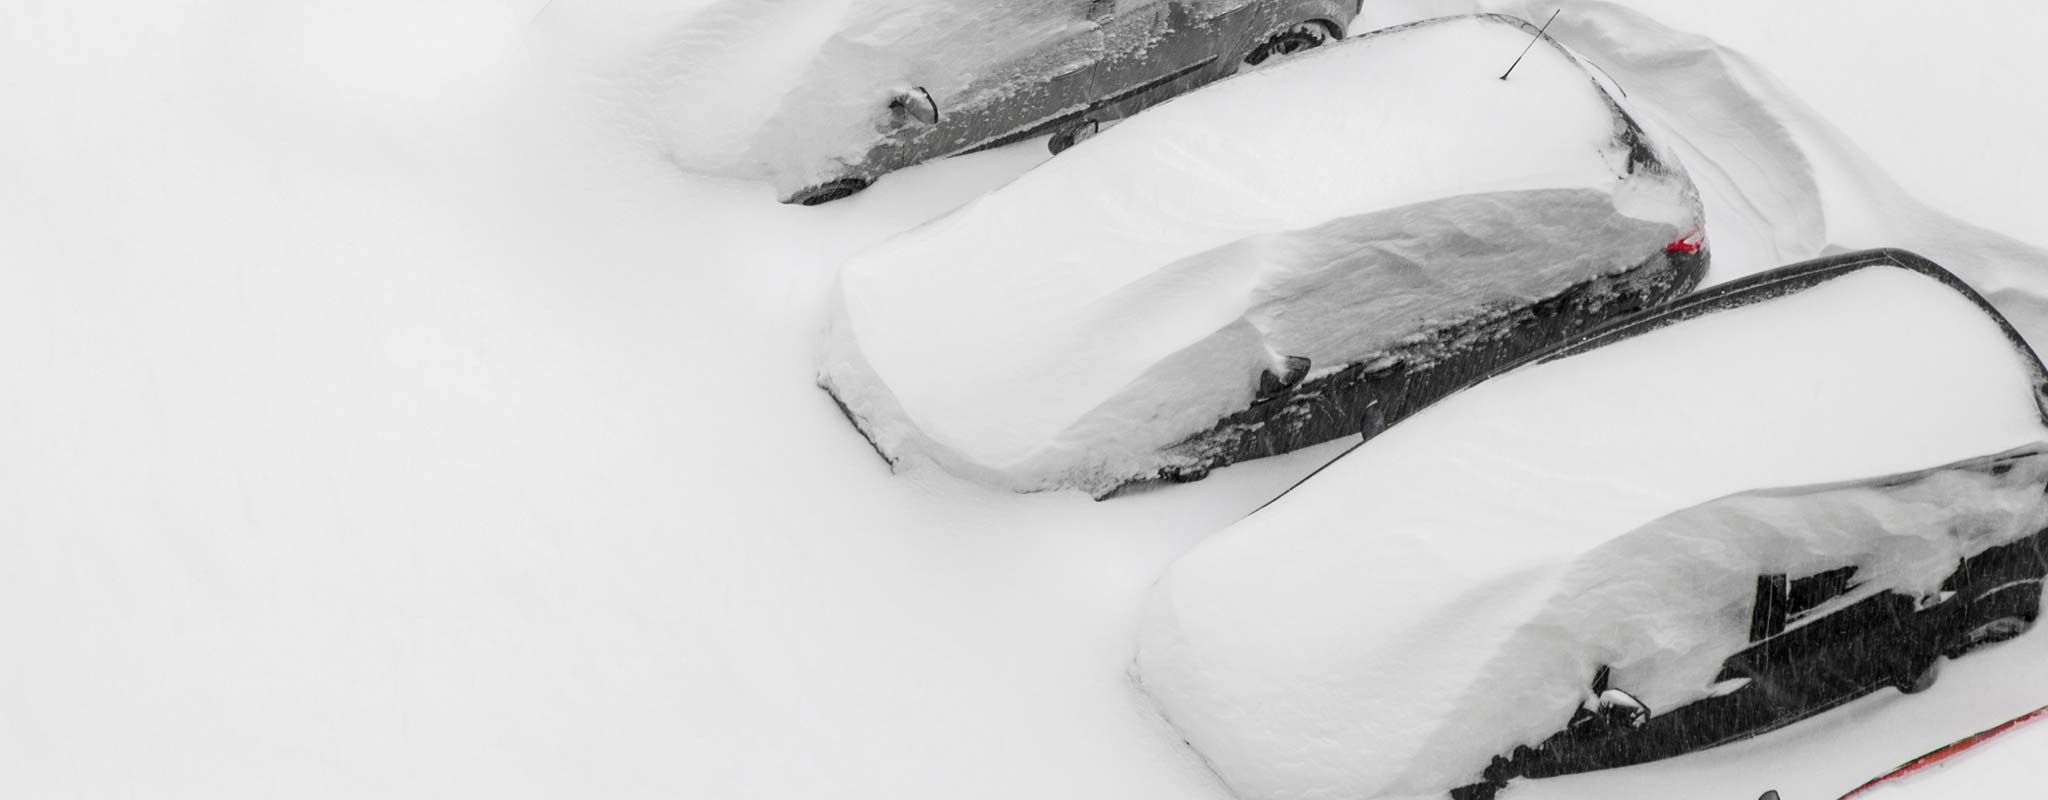 Cars buried under a large snowfall.